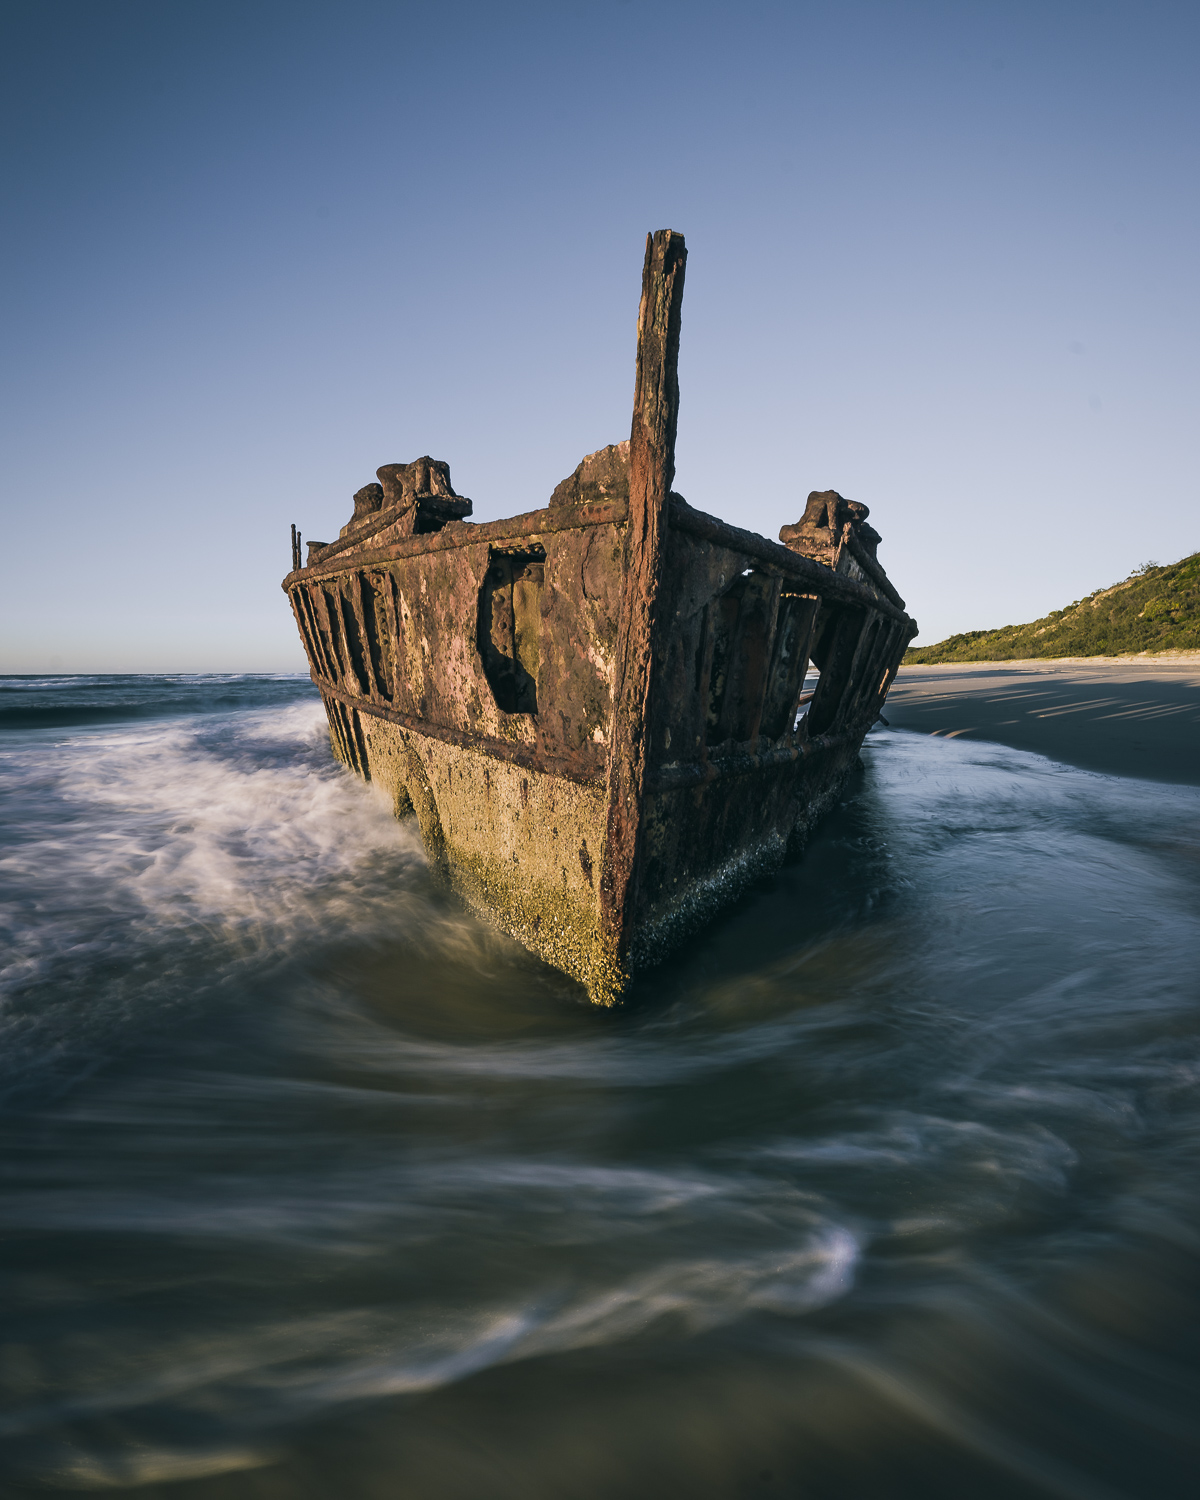 shipwreck create a travel photography theme